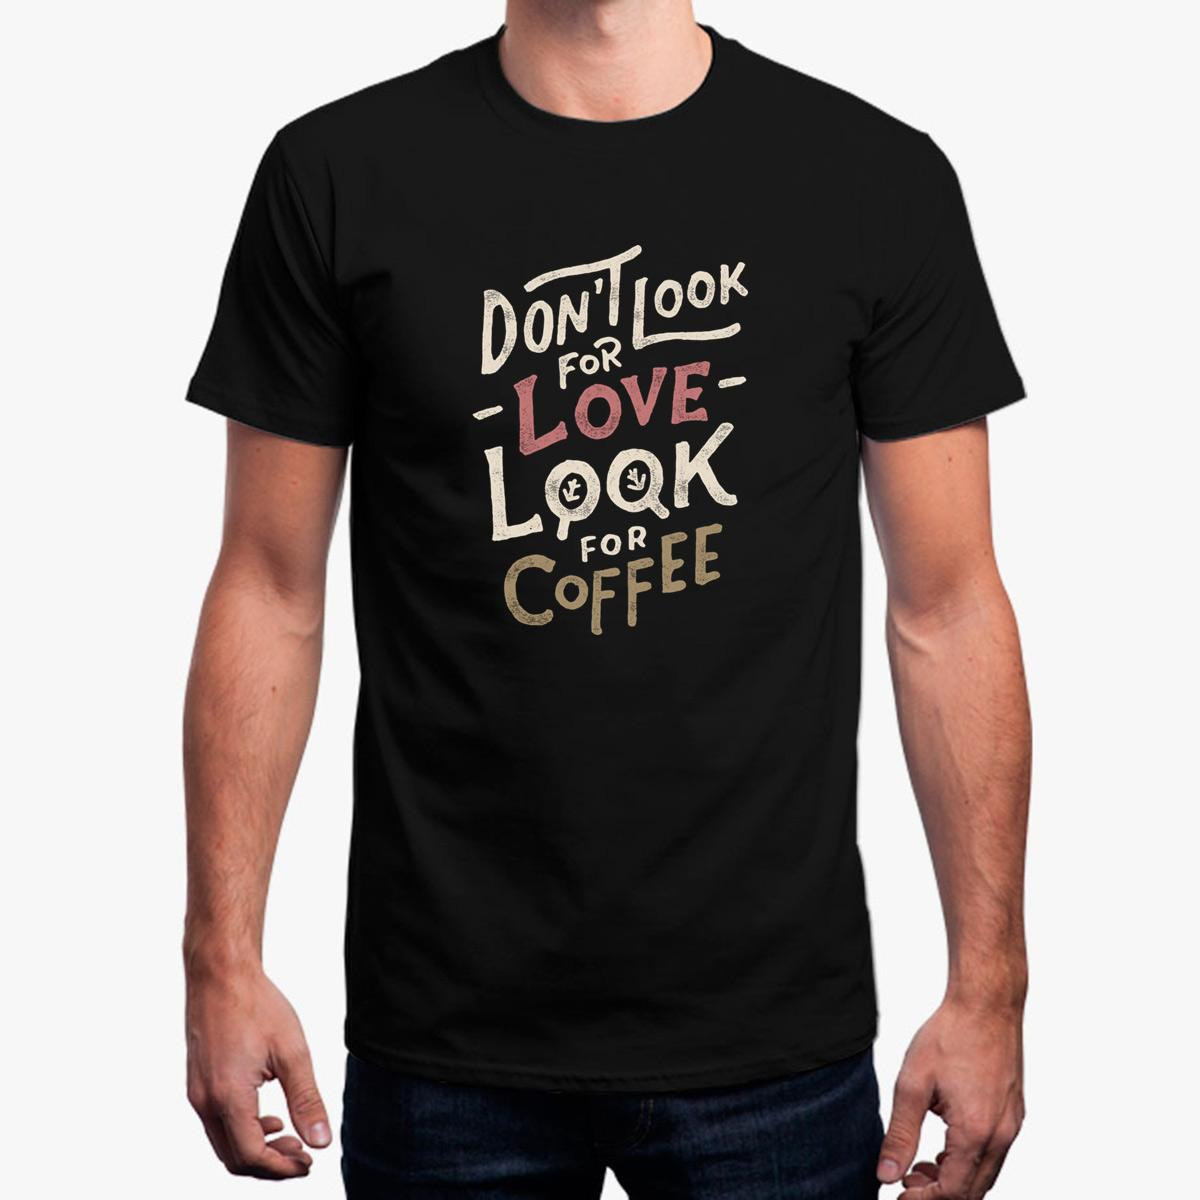 Top Quality Non cercare l'amore Look For Coffee T-Shirt Summer Round Collare Tee Shirt Unisex Taglie forti T Shirt Uomo Manica corta